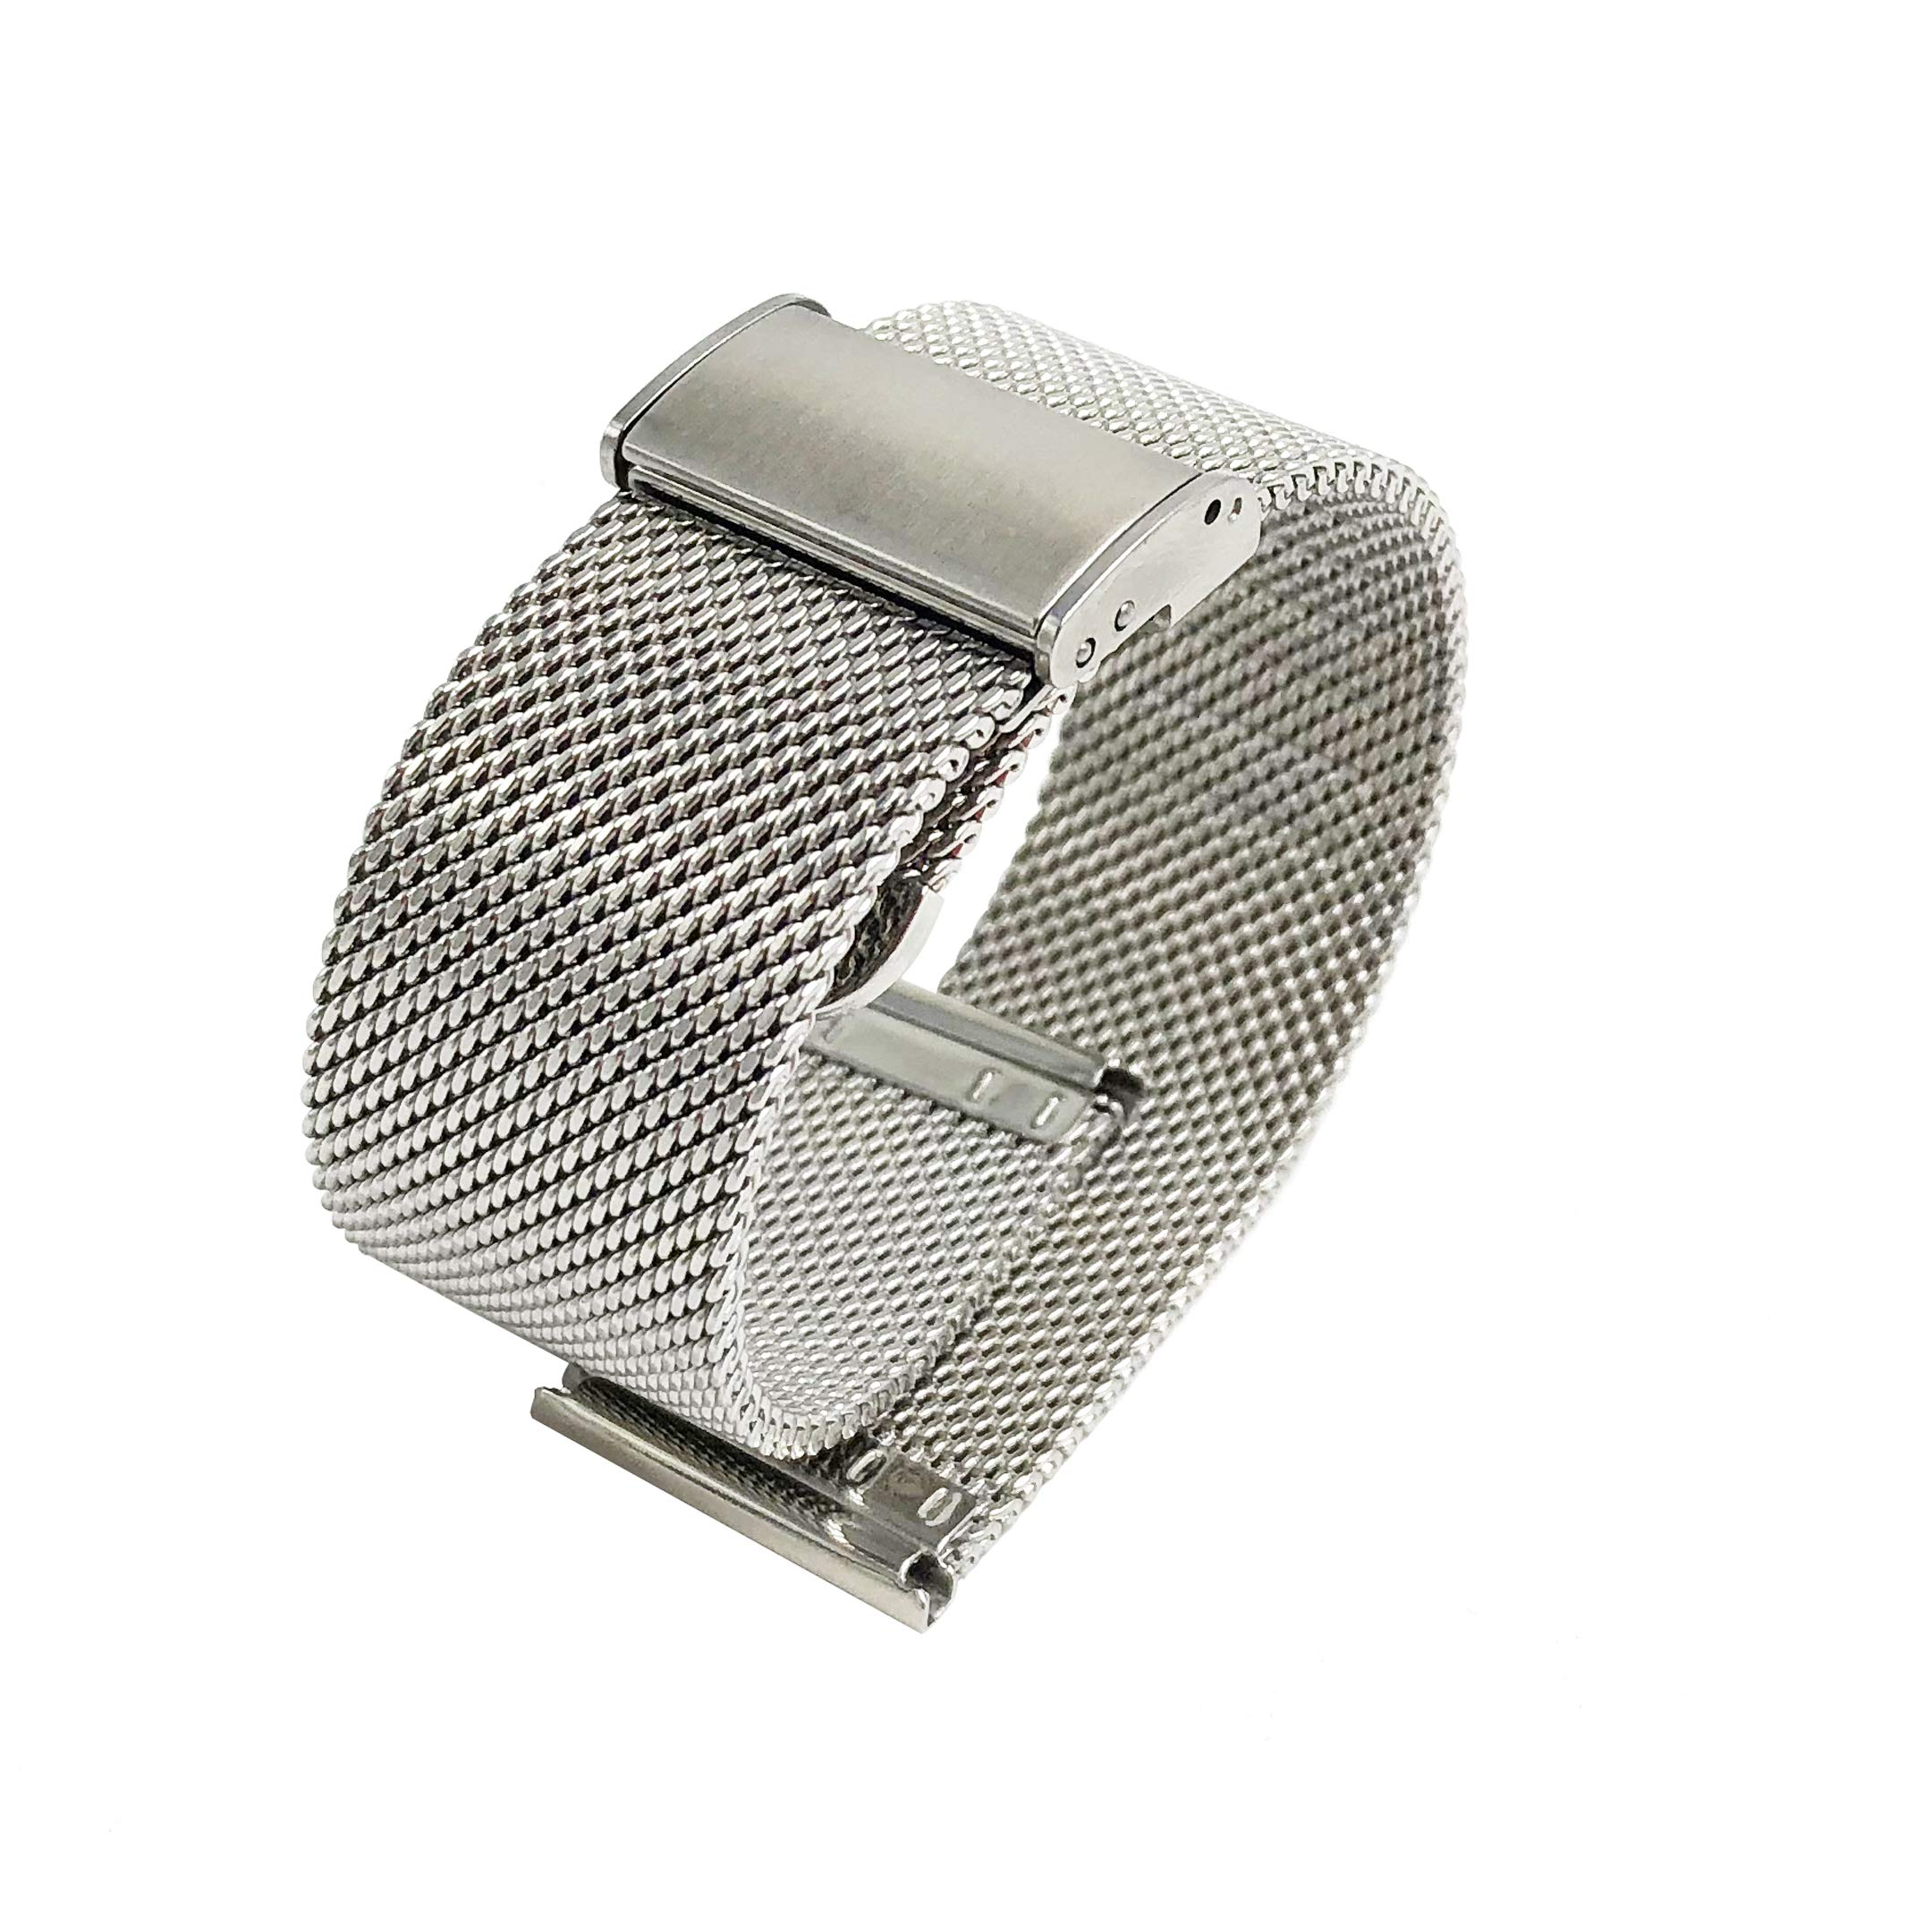 22mm Watch Band Stainless Steel Silver, Wristband Milanese Strap Bracelet Replacement Solid Weave Mesh Band Easy Adjustable Buckle Clasp LeapTop